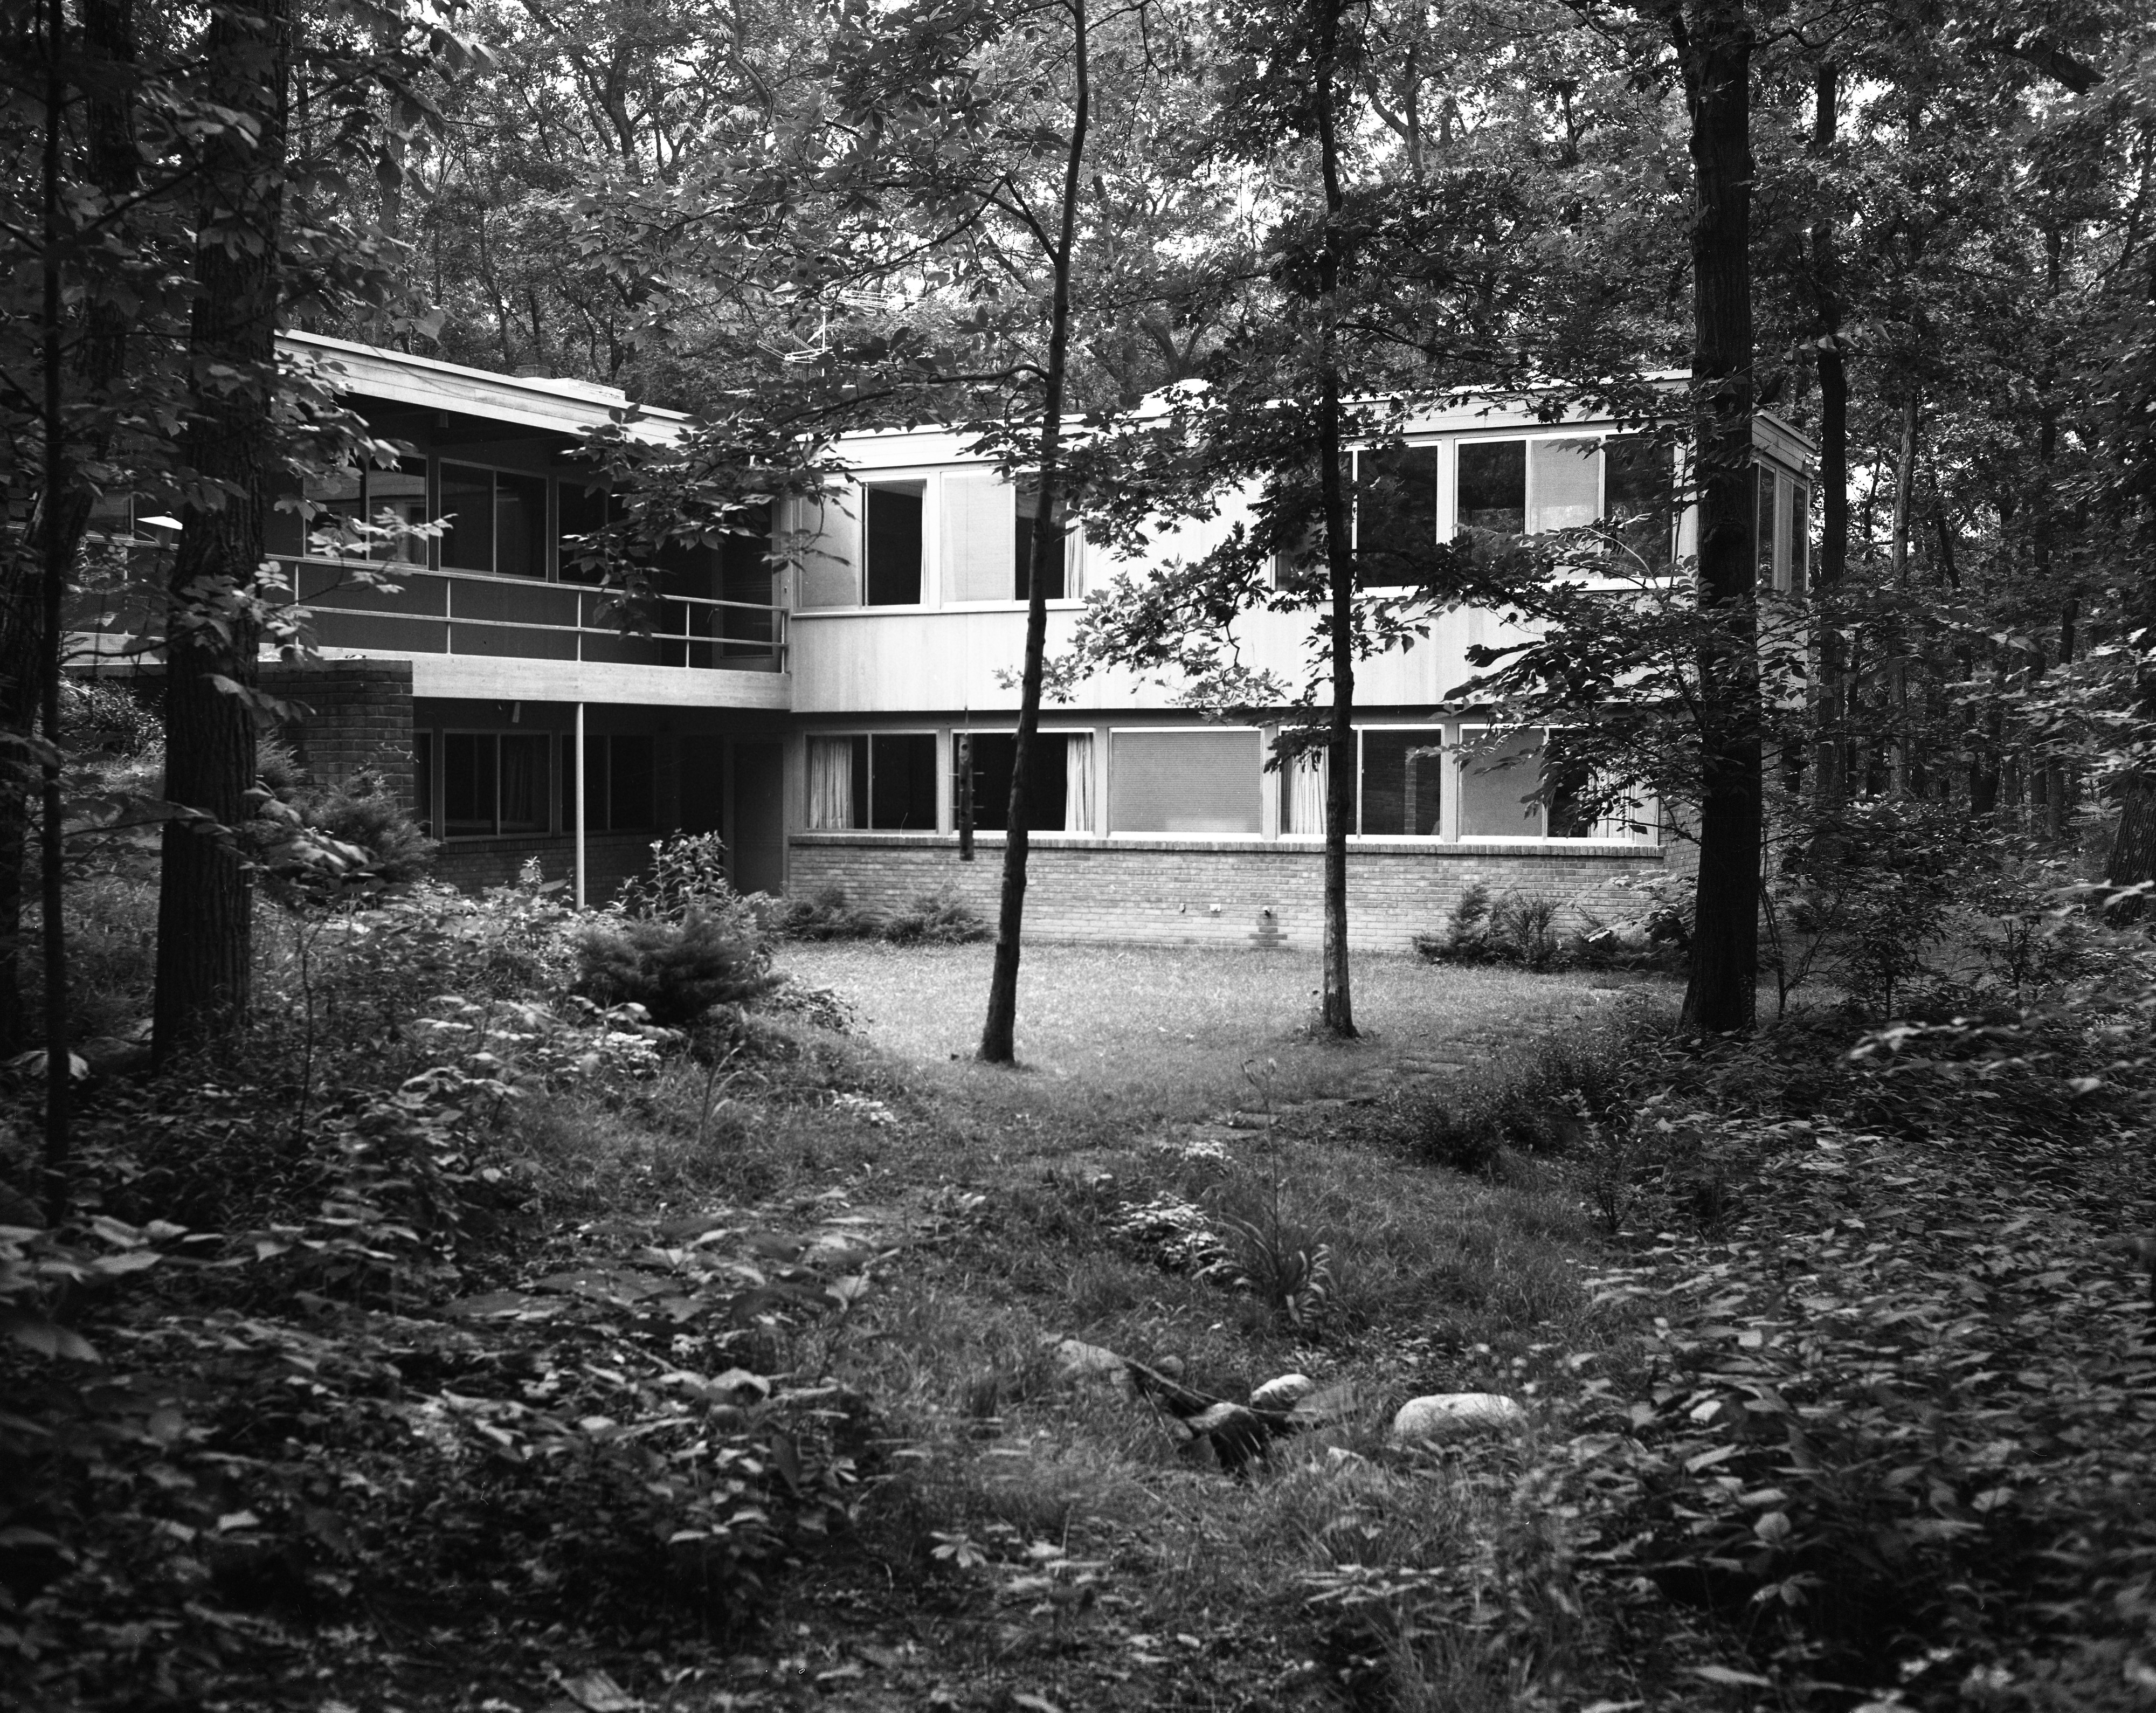 Conn Contemporary Home At 200 Orchard Hill Drive Overlooks Nichols Arboretum, August 1960 image